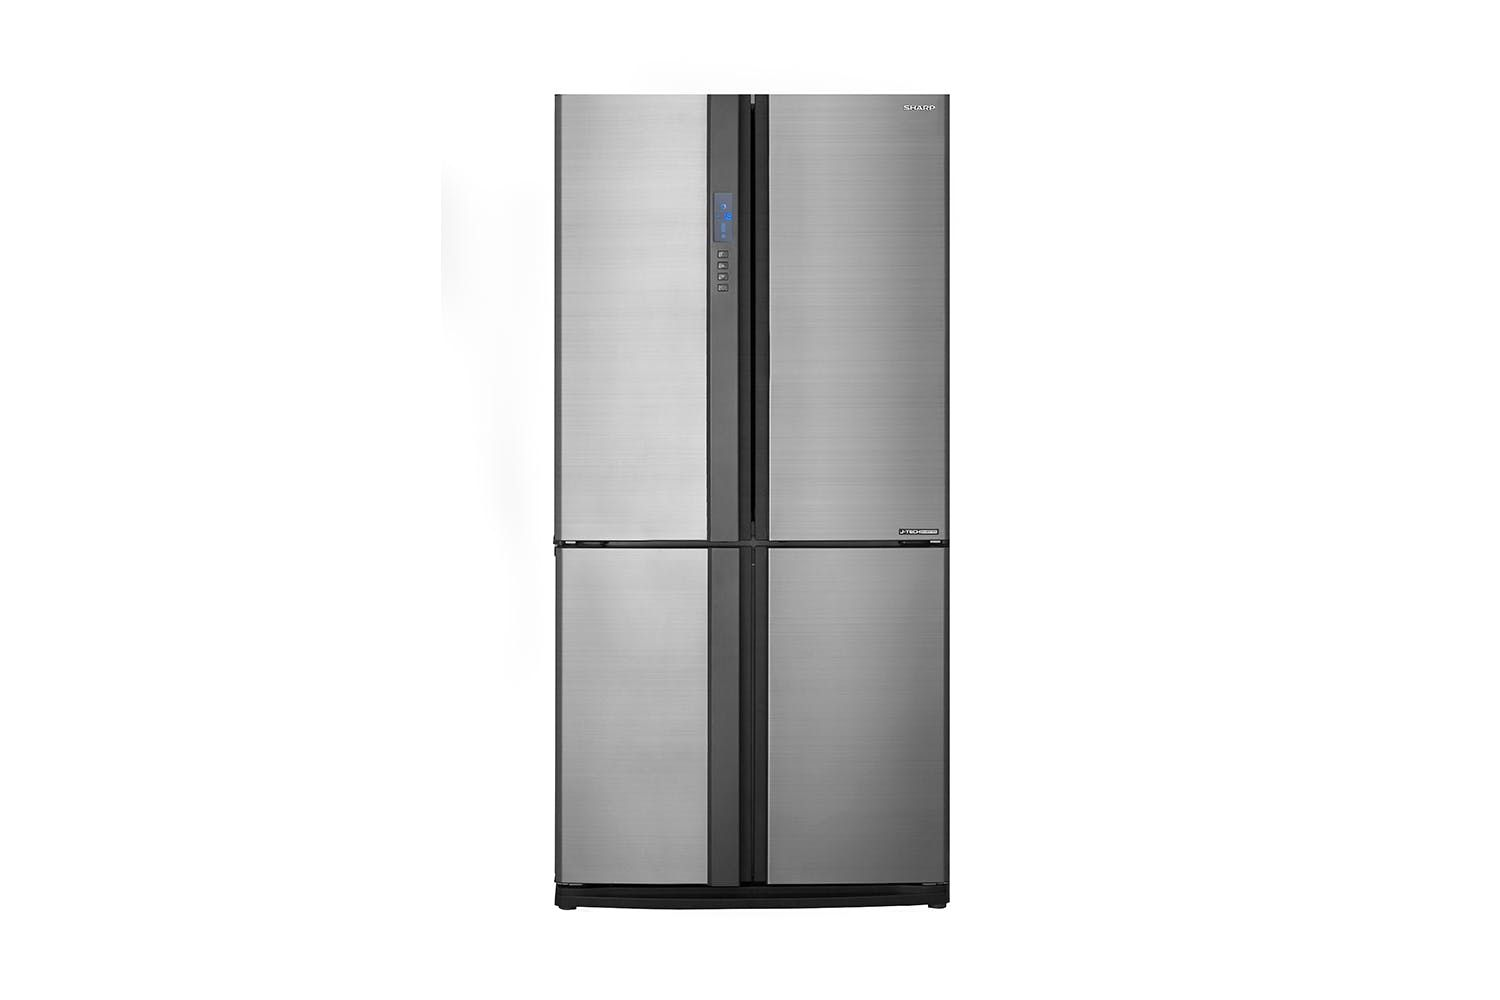 Sharp 624l French Door Fridge Freezer Freezer And Doors